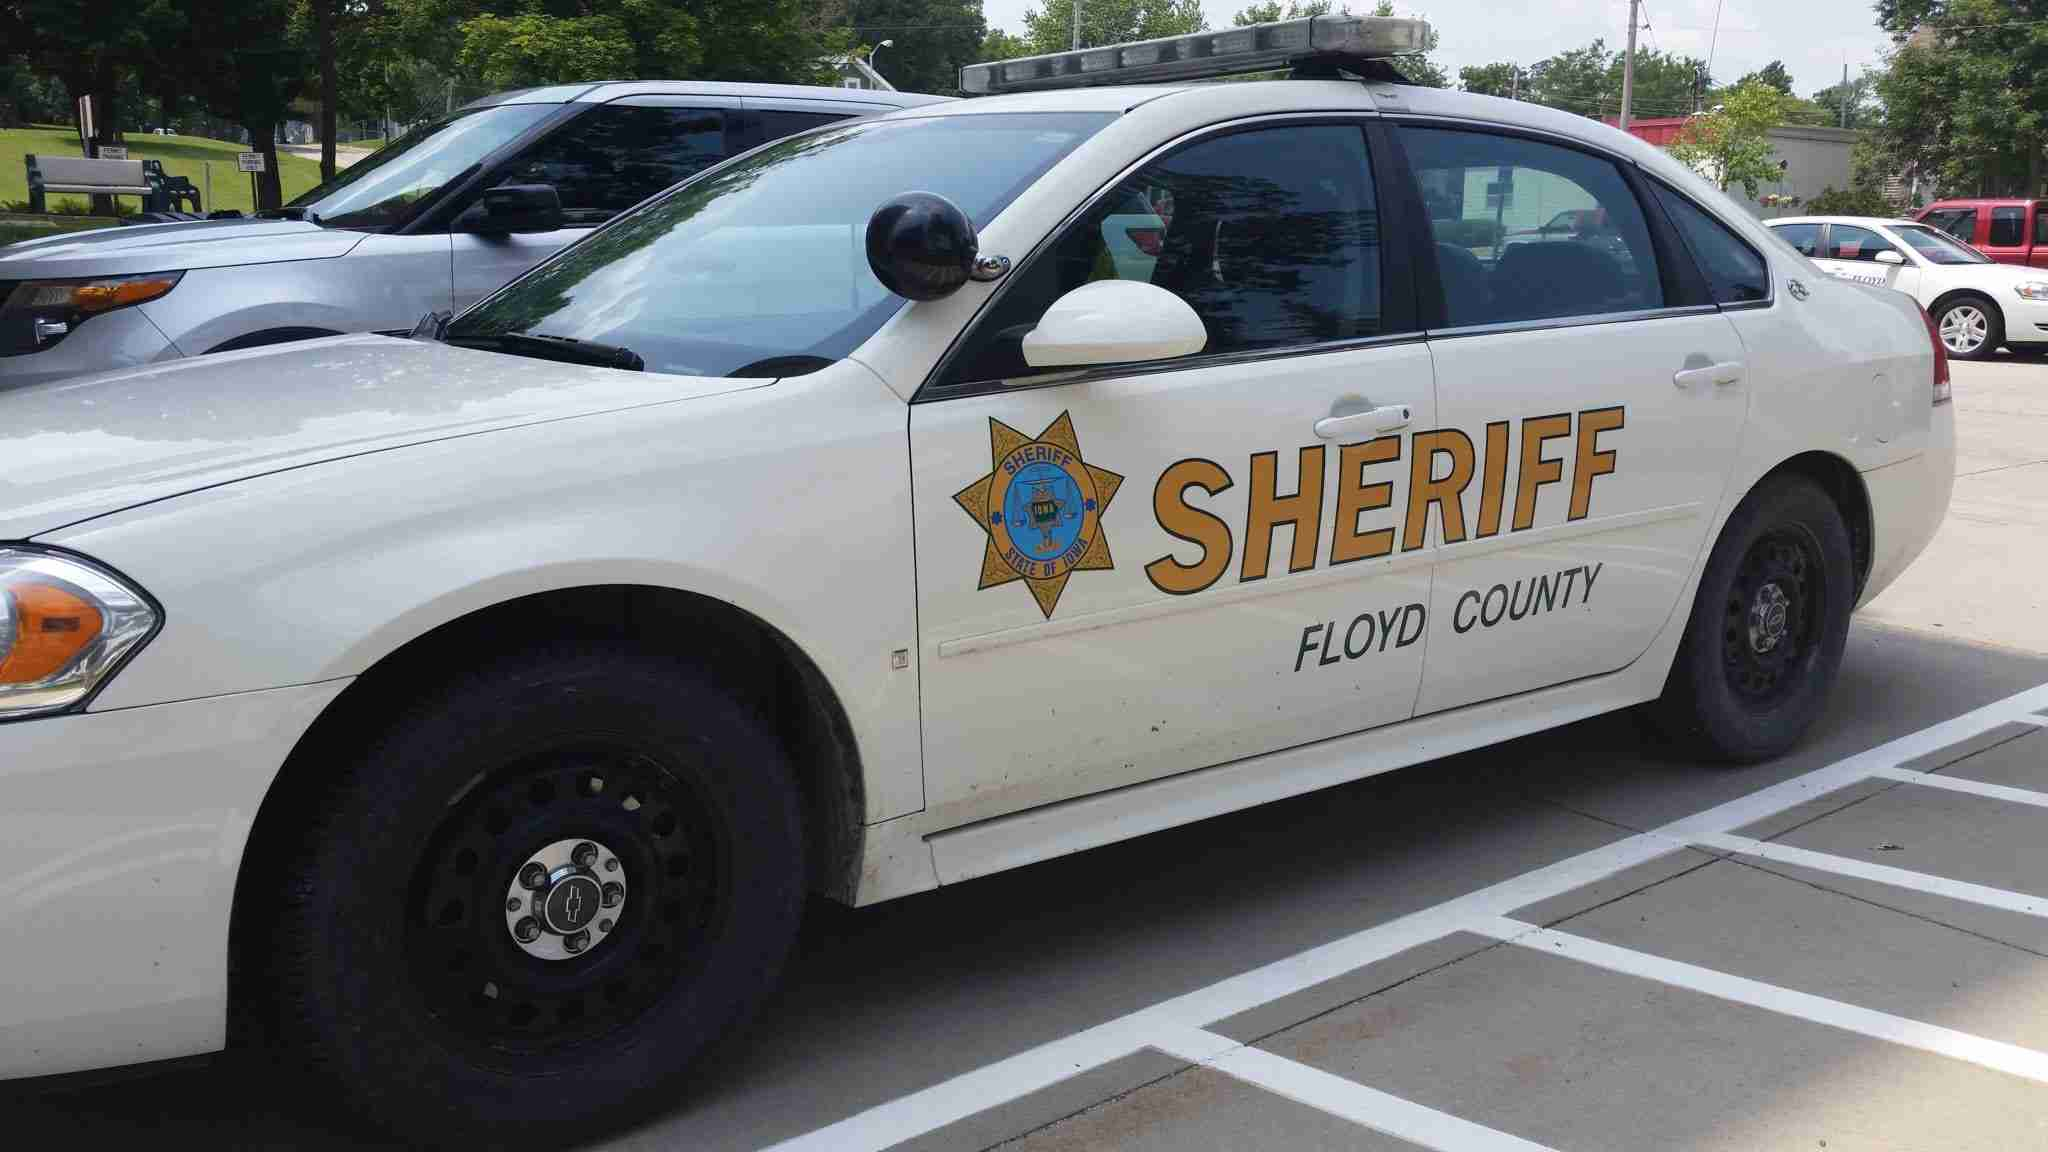 Floyd County Sheriff